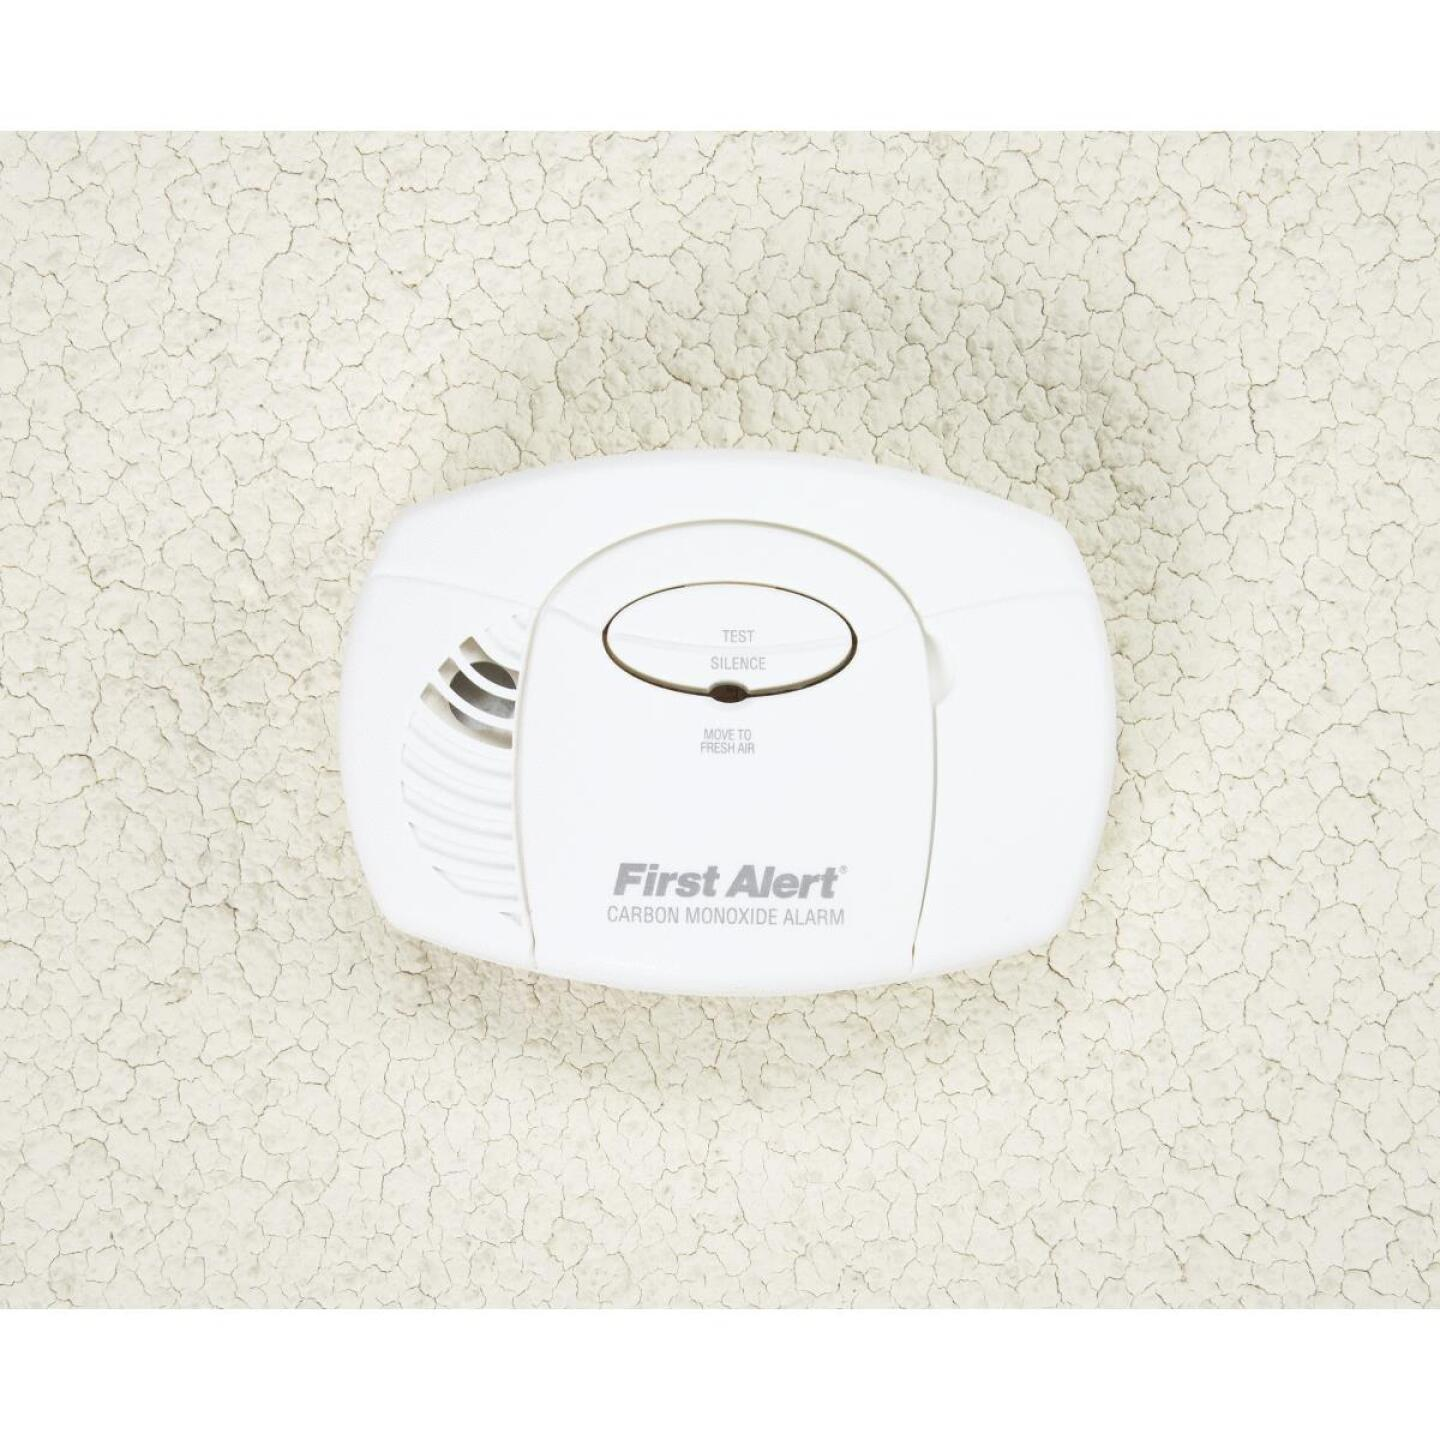 First Alert Battery Operated 9V Electrochemical Carbon Monoxide Alarm Image 2